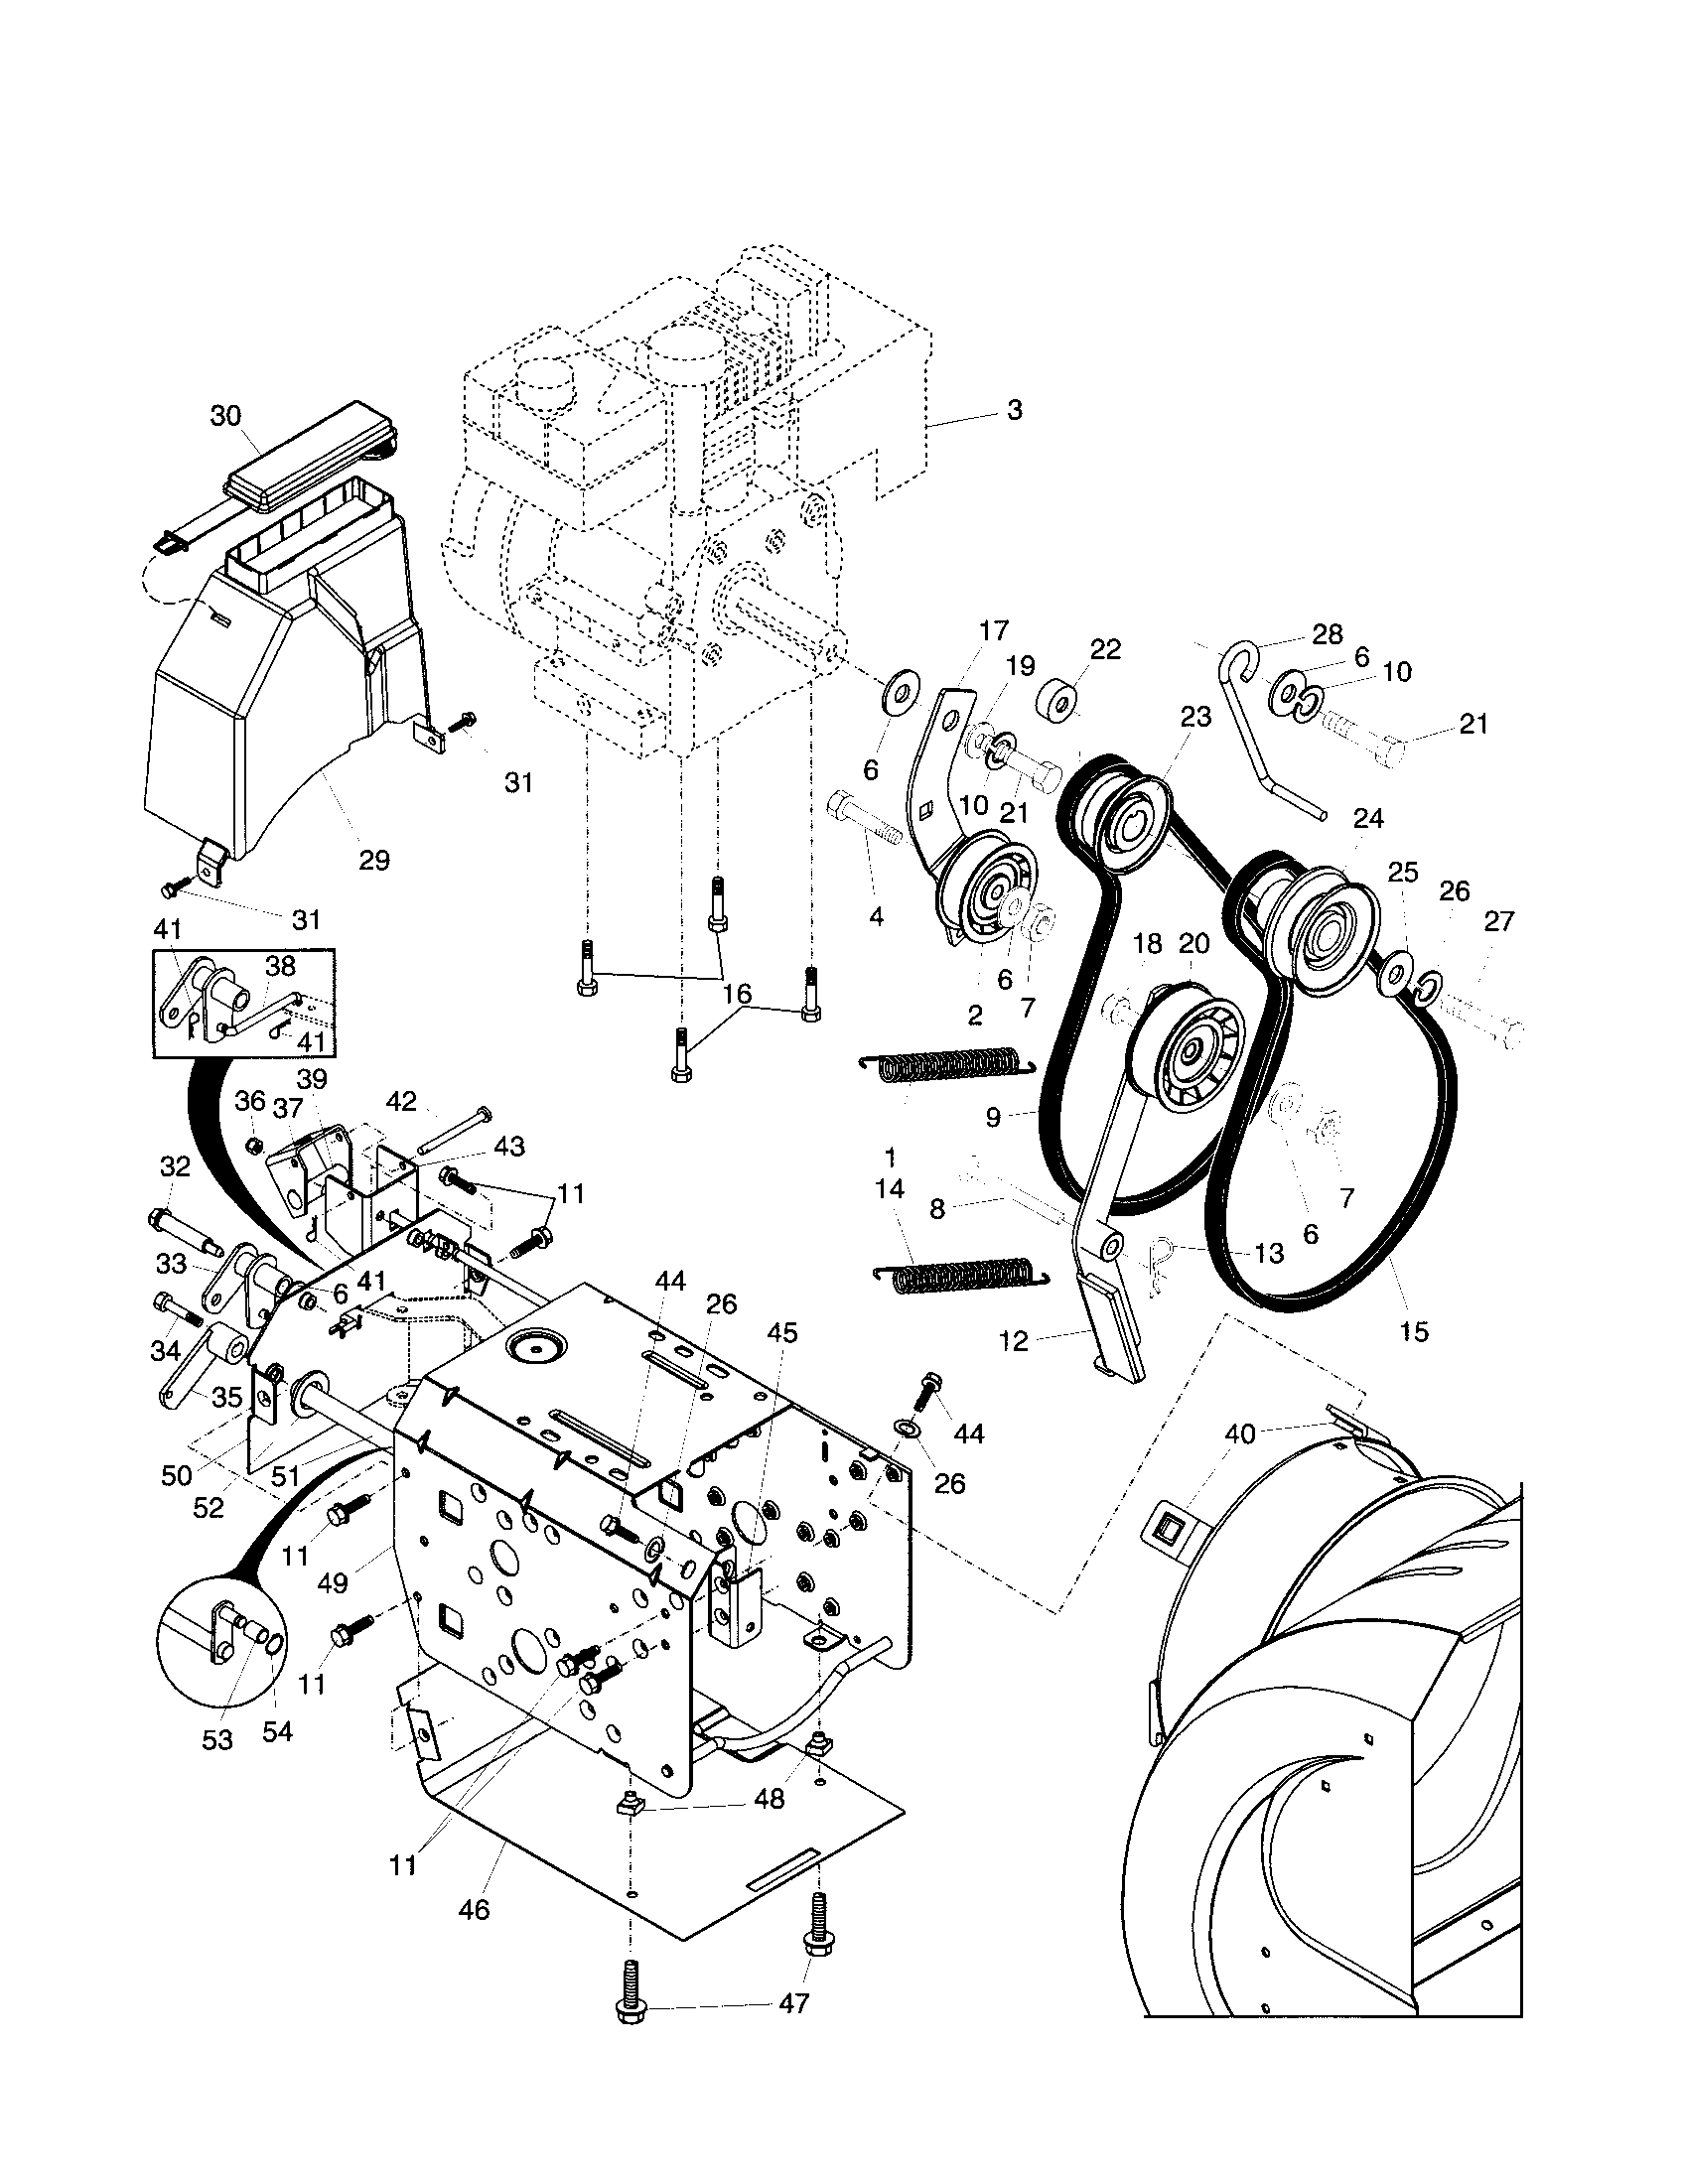 Tecumseh Electric Start Motor Wiring Diagram 03 Dodge